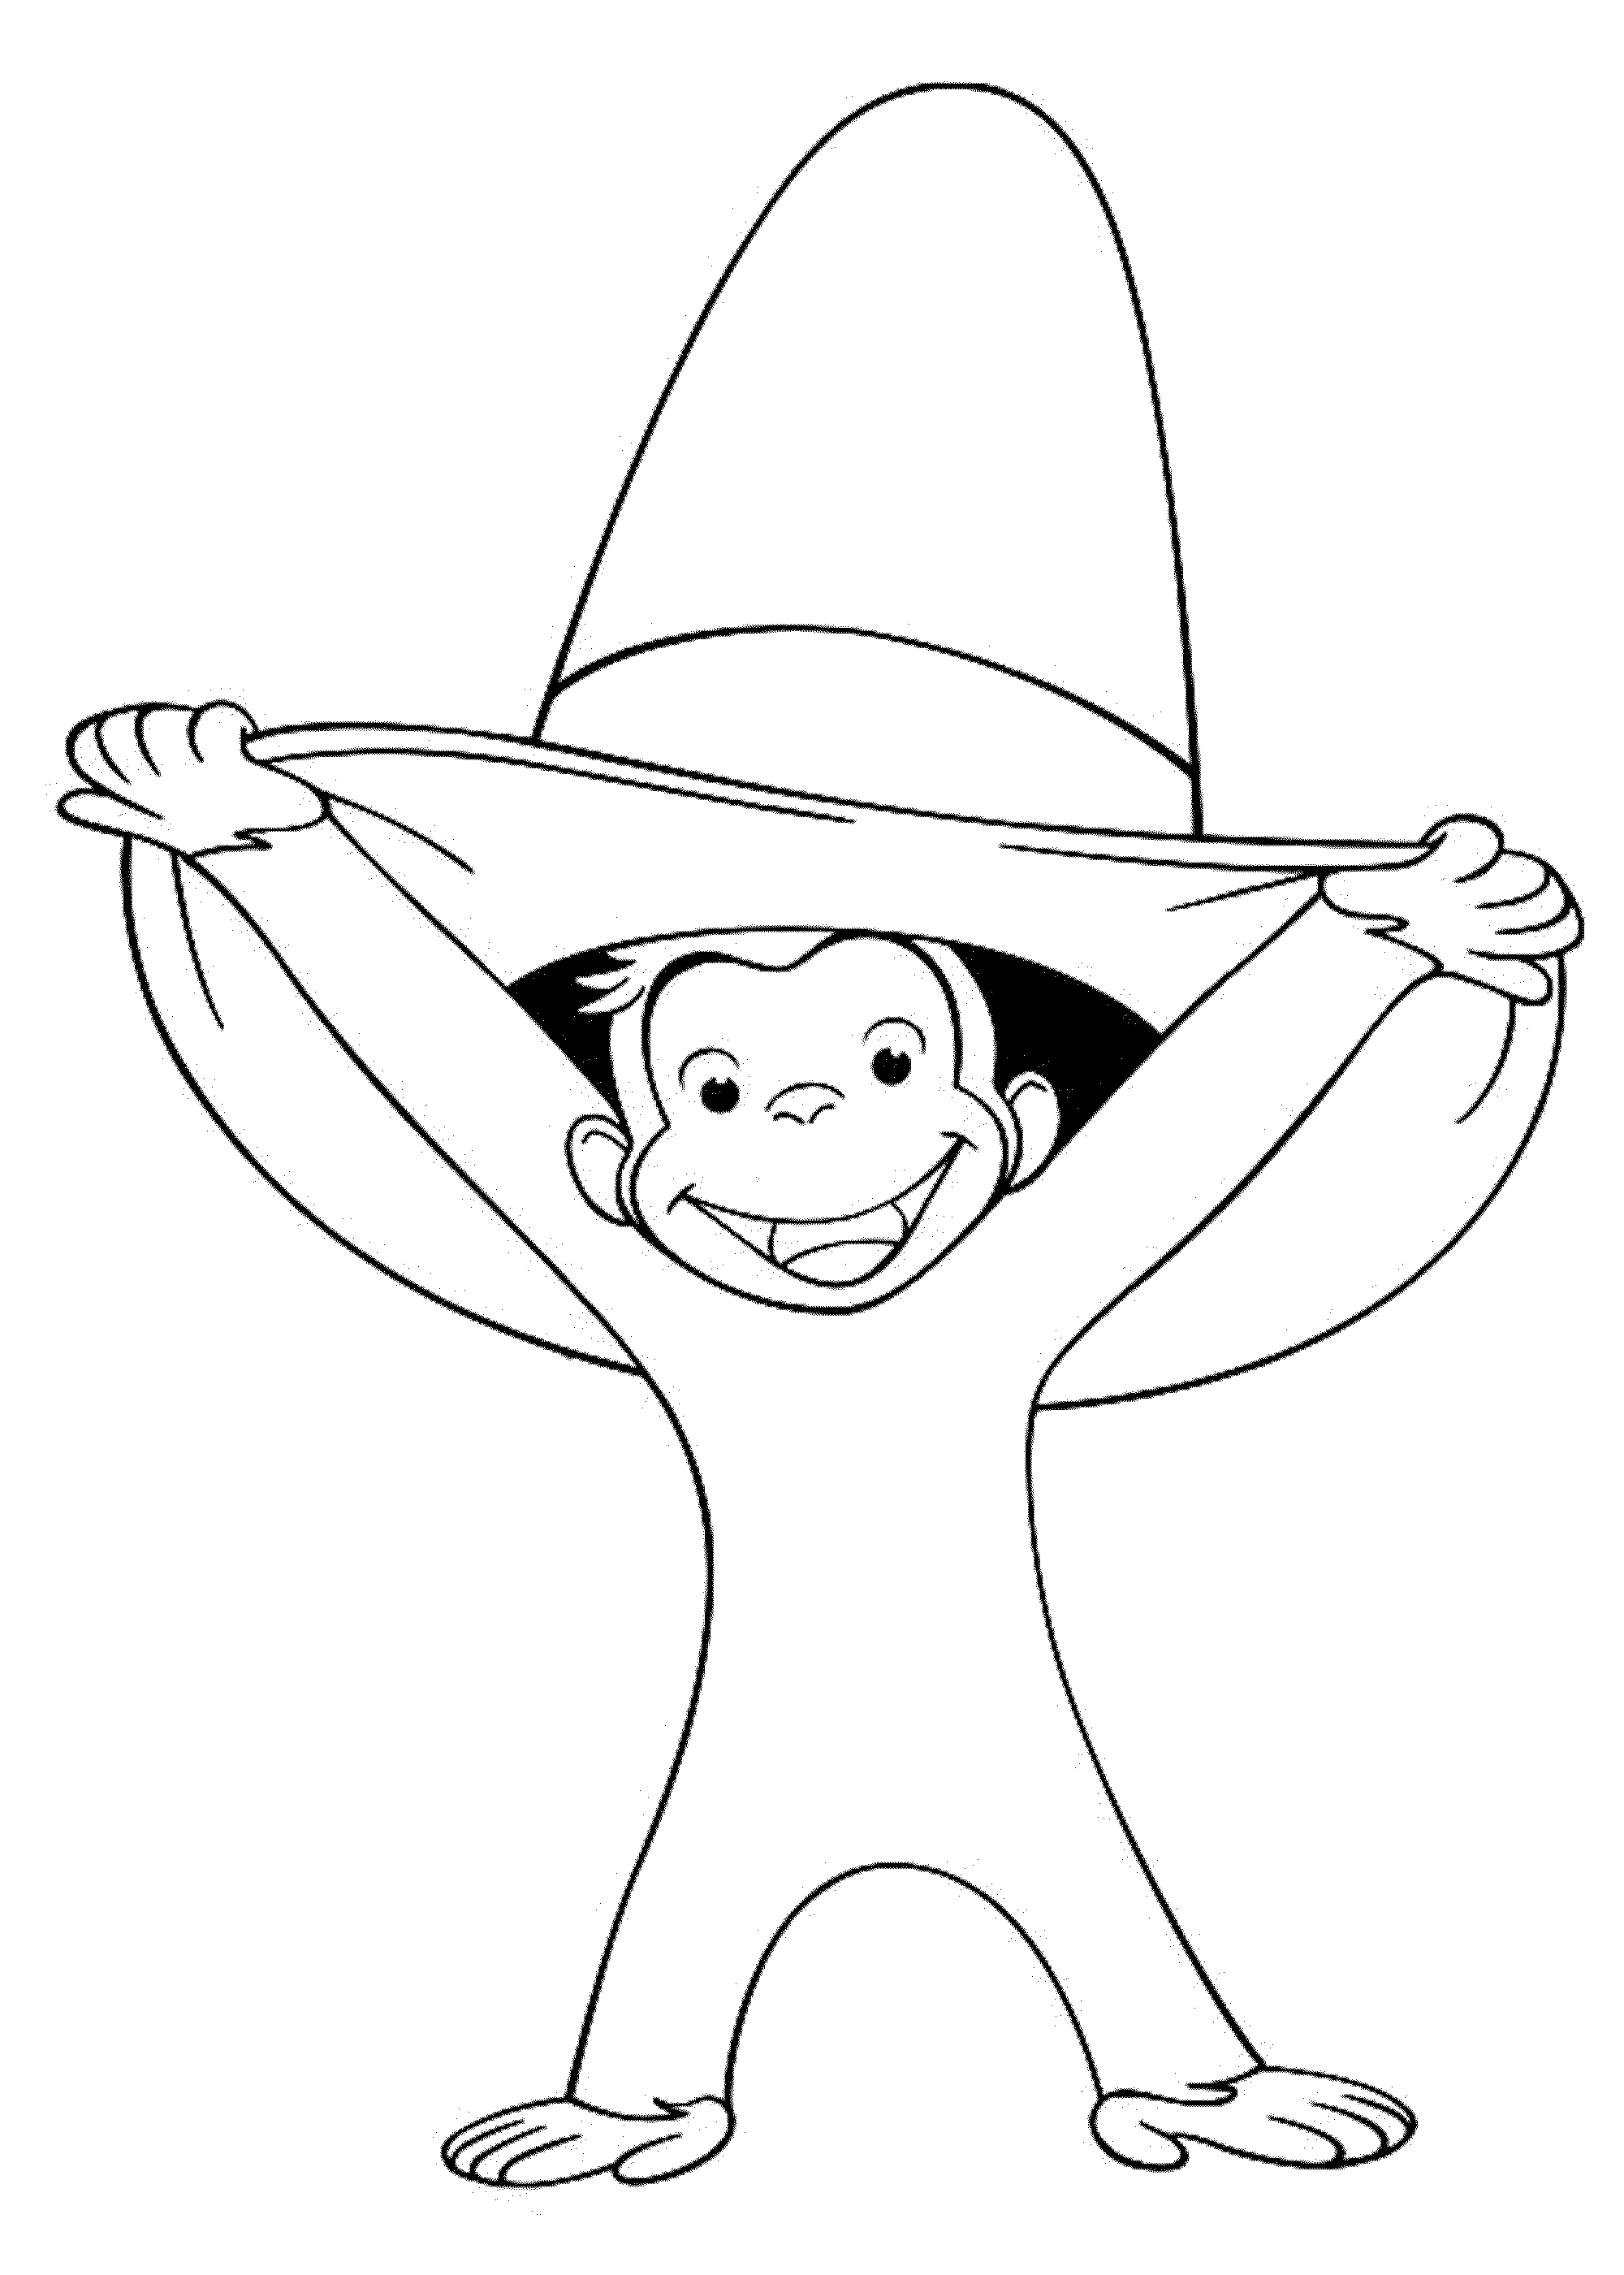 coloring pages of curious george - photo#33